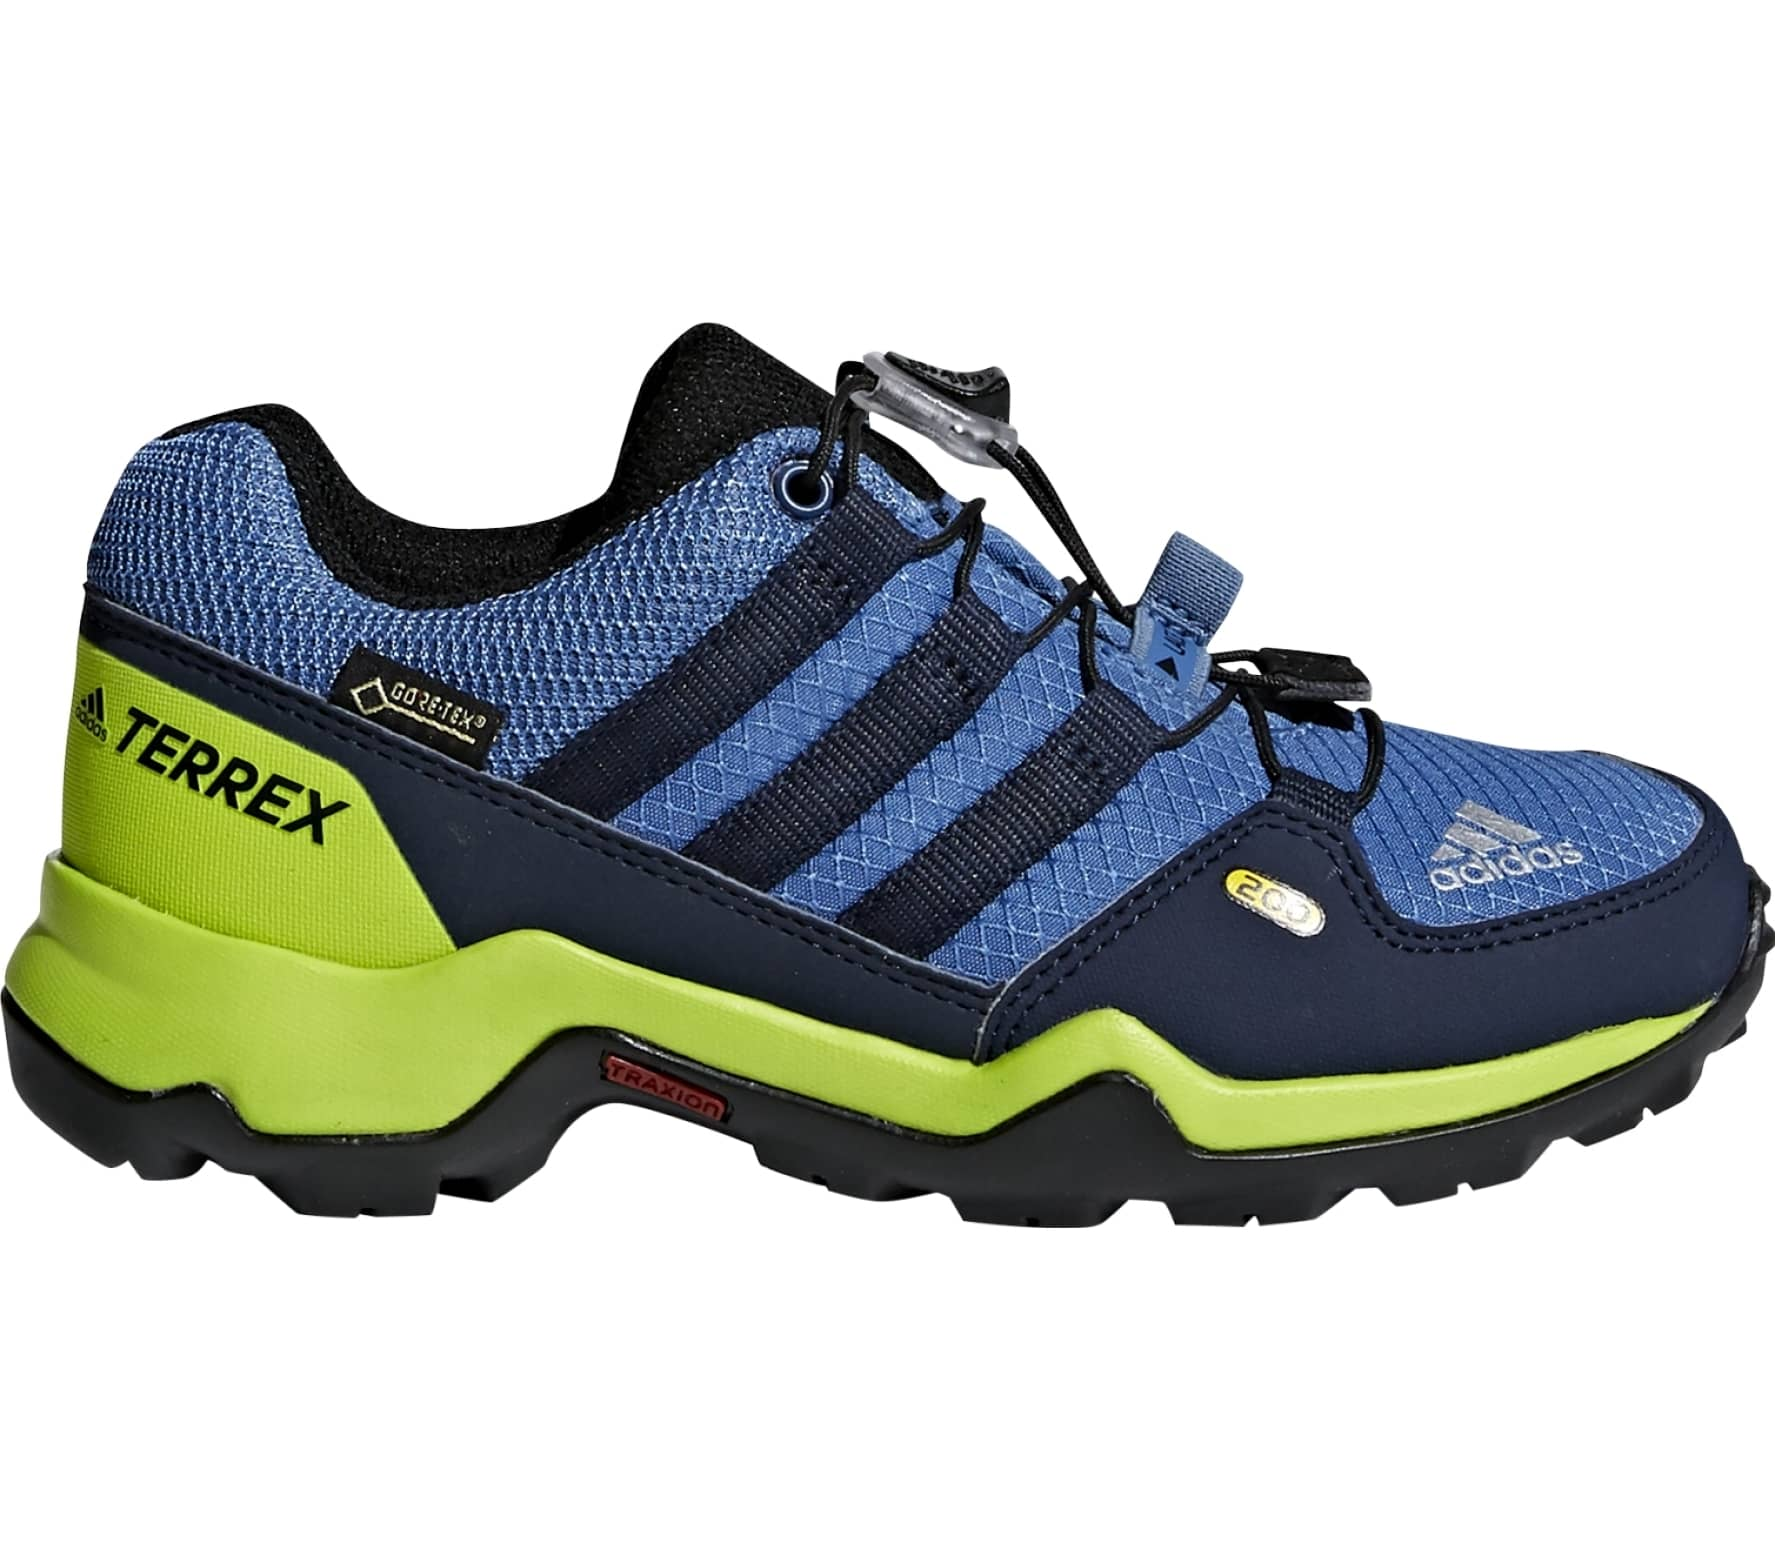 Adidas - Terrex Gtx Children hiking shoes (blue-yellow) - buy it at ... 9c067f0c6